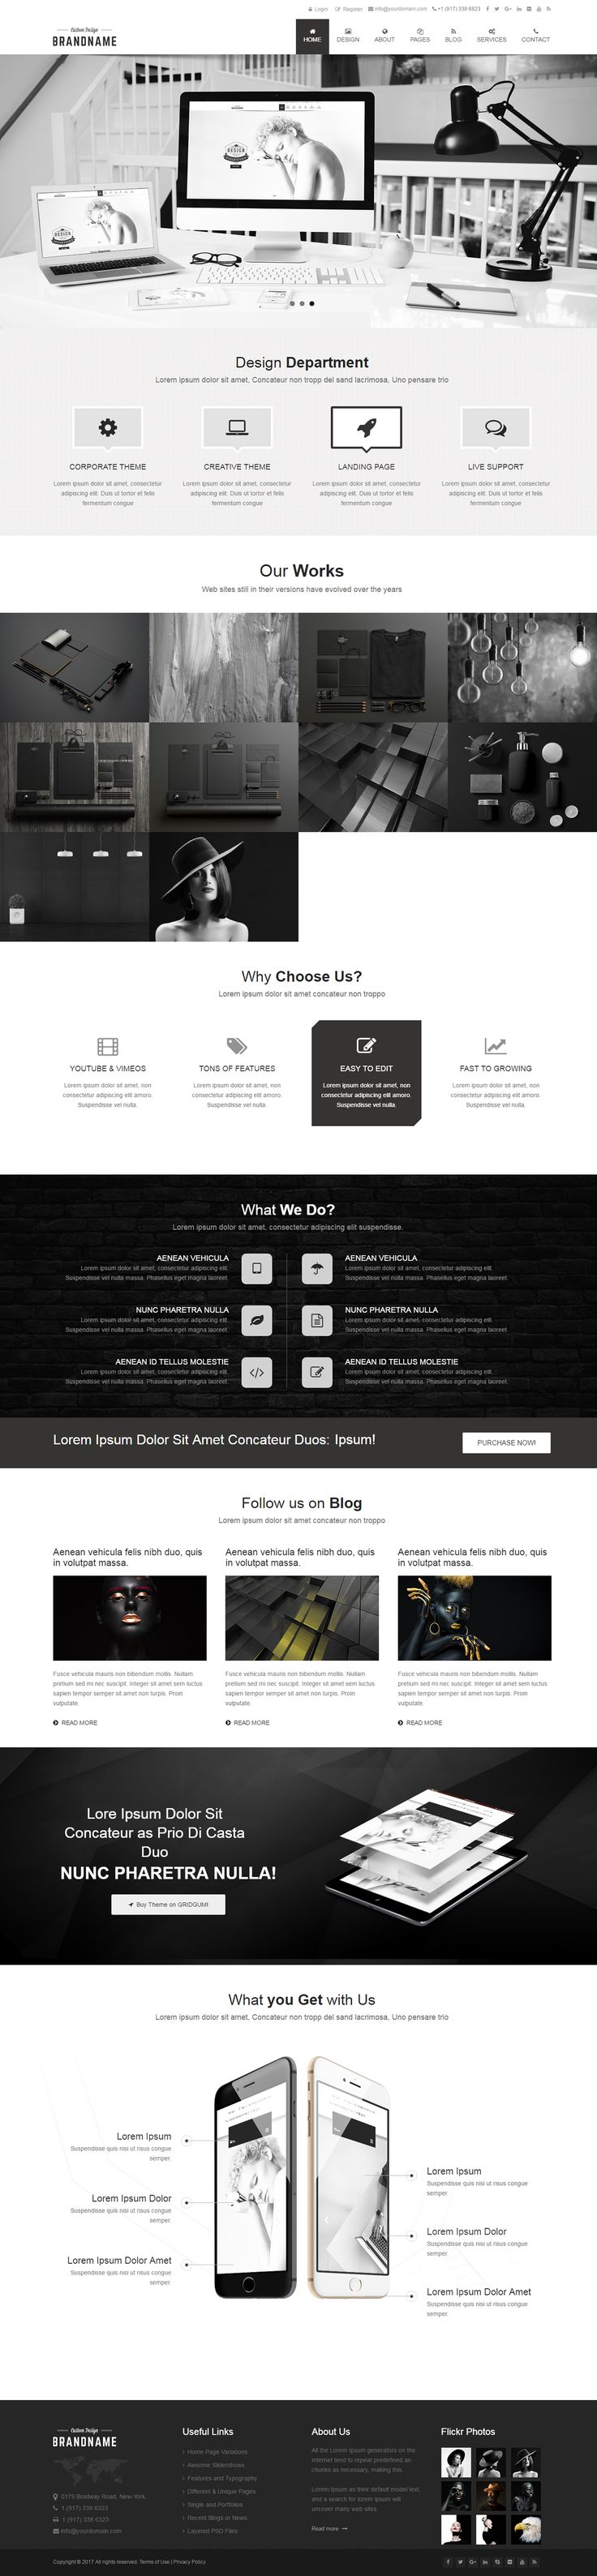 264 best HTML5 Templates images on Pinterest | Role models, Template ...